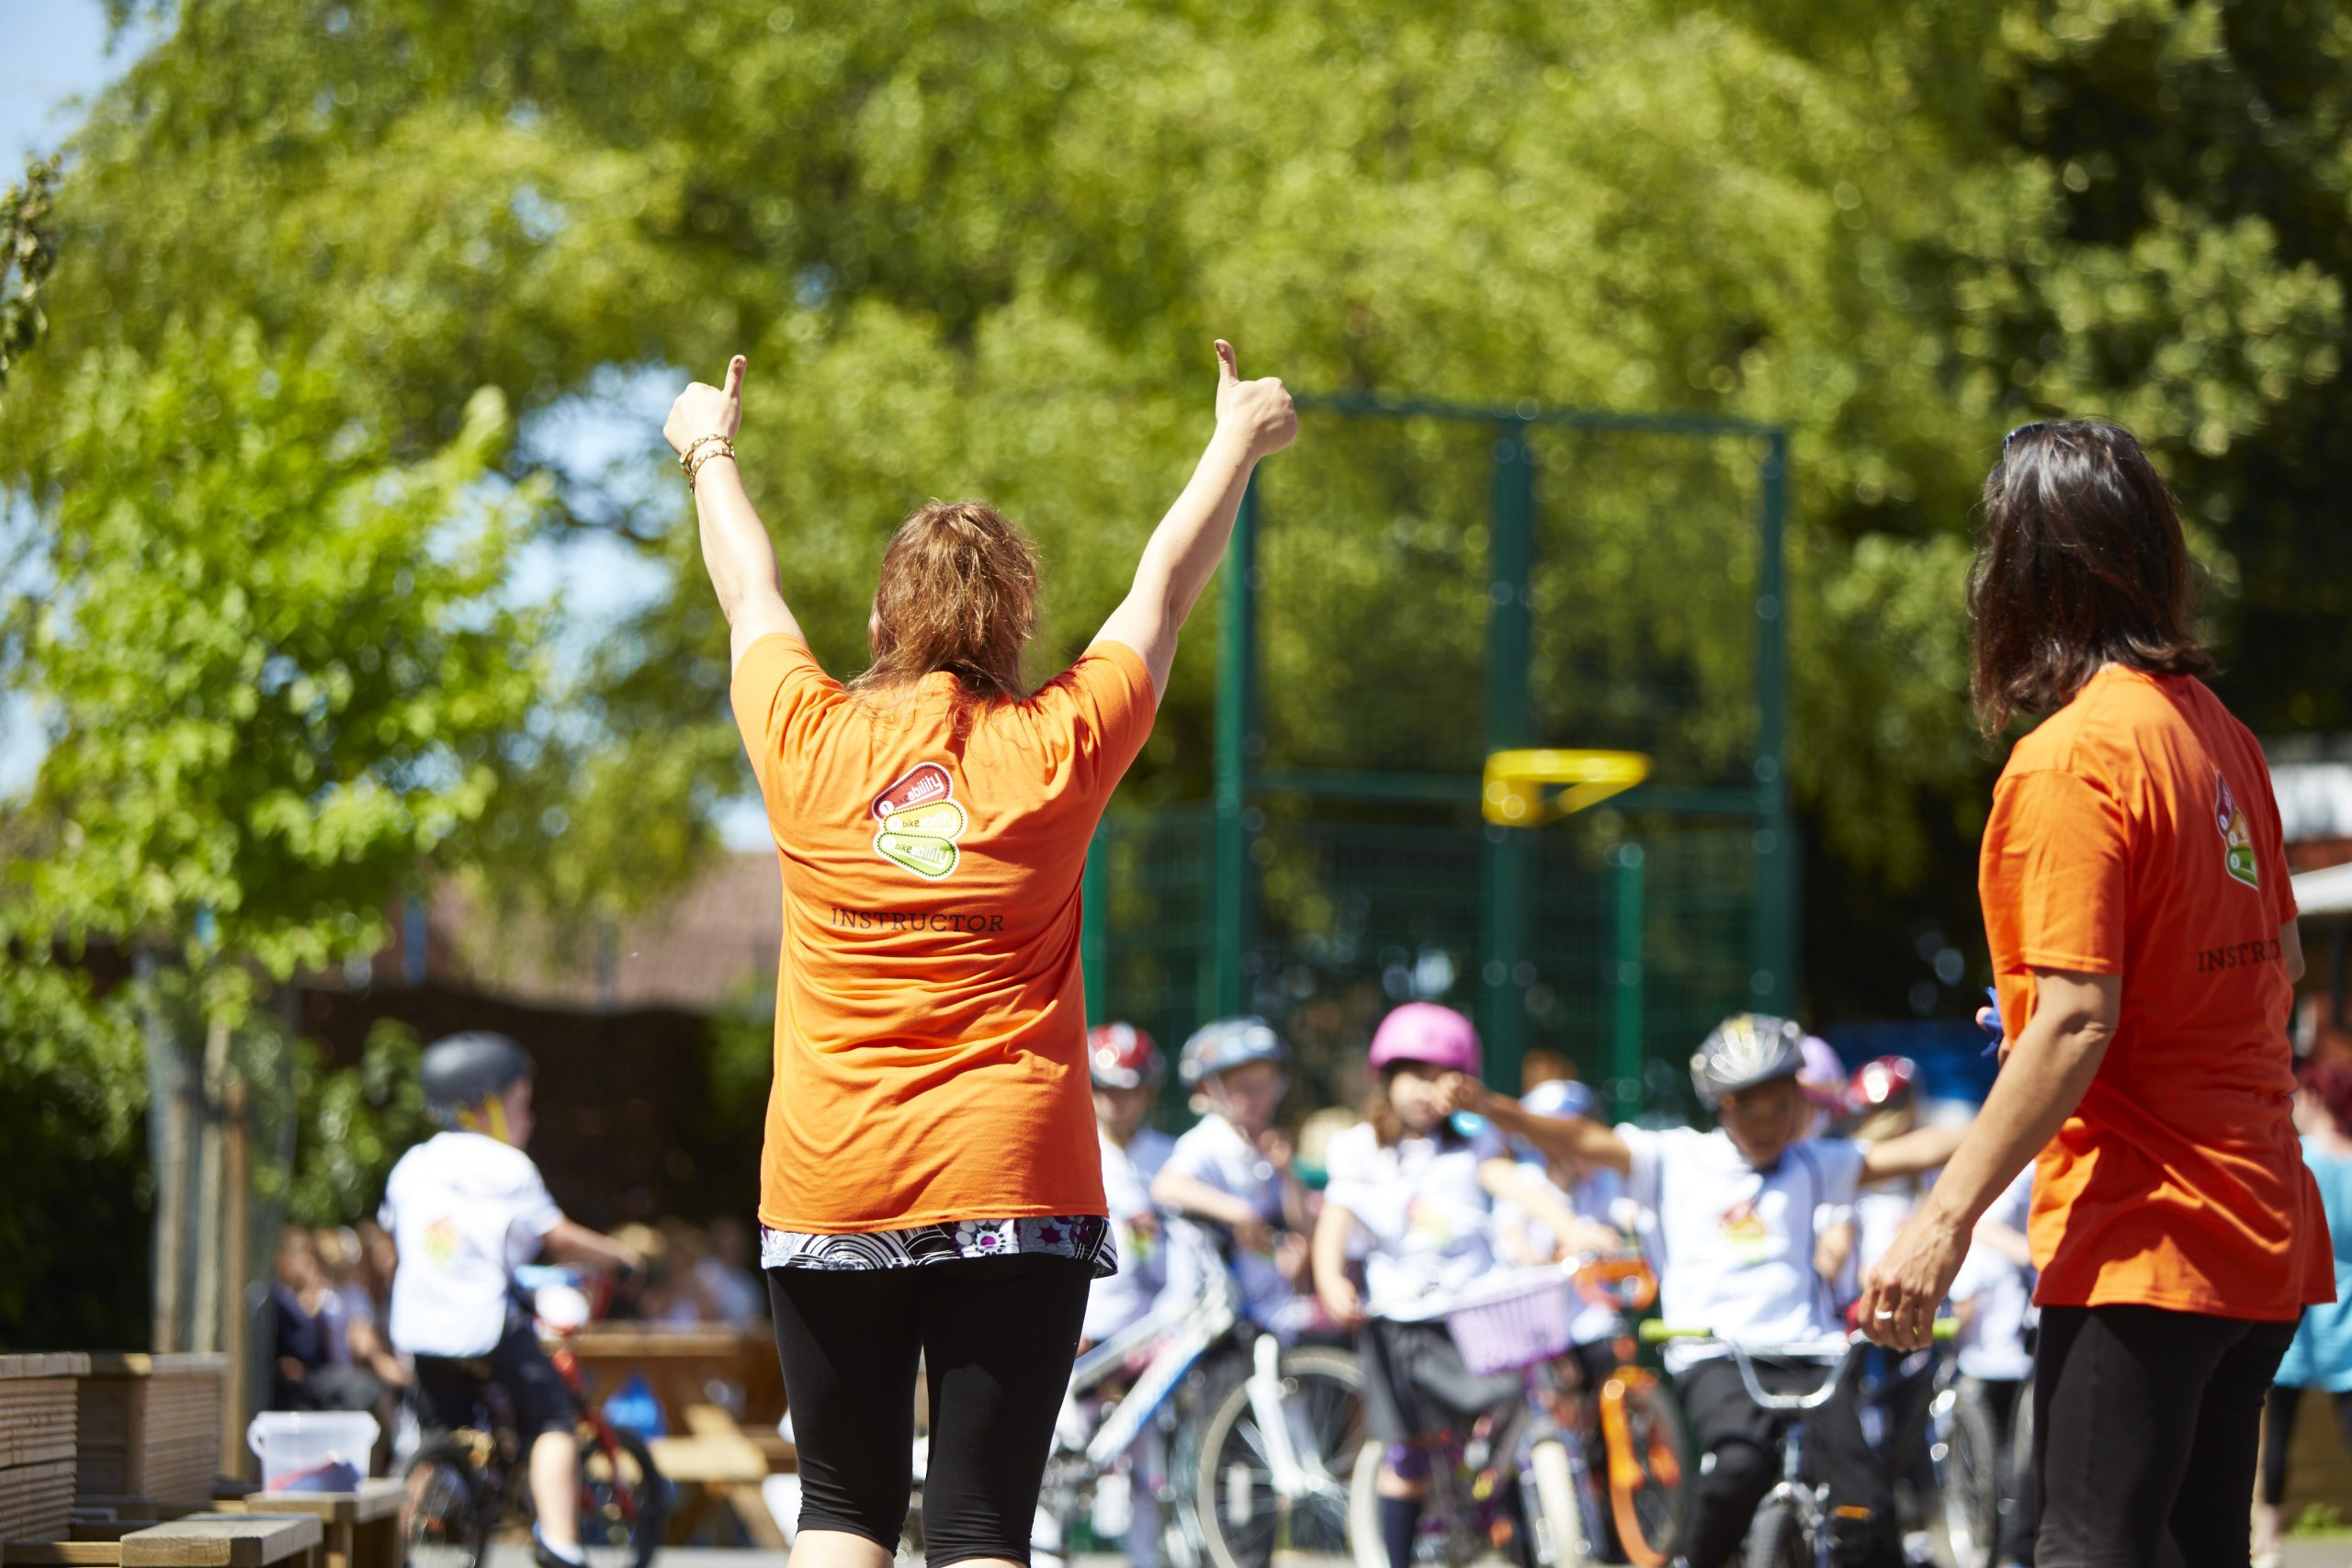 A Bikeability instructor with her back to the camera doing two thumbs up in the air